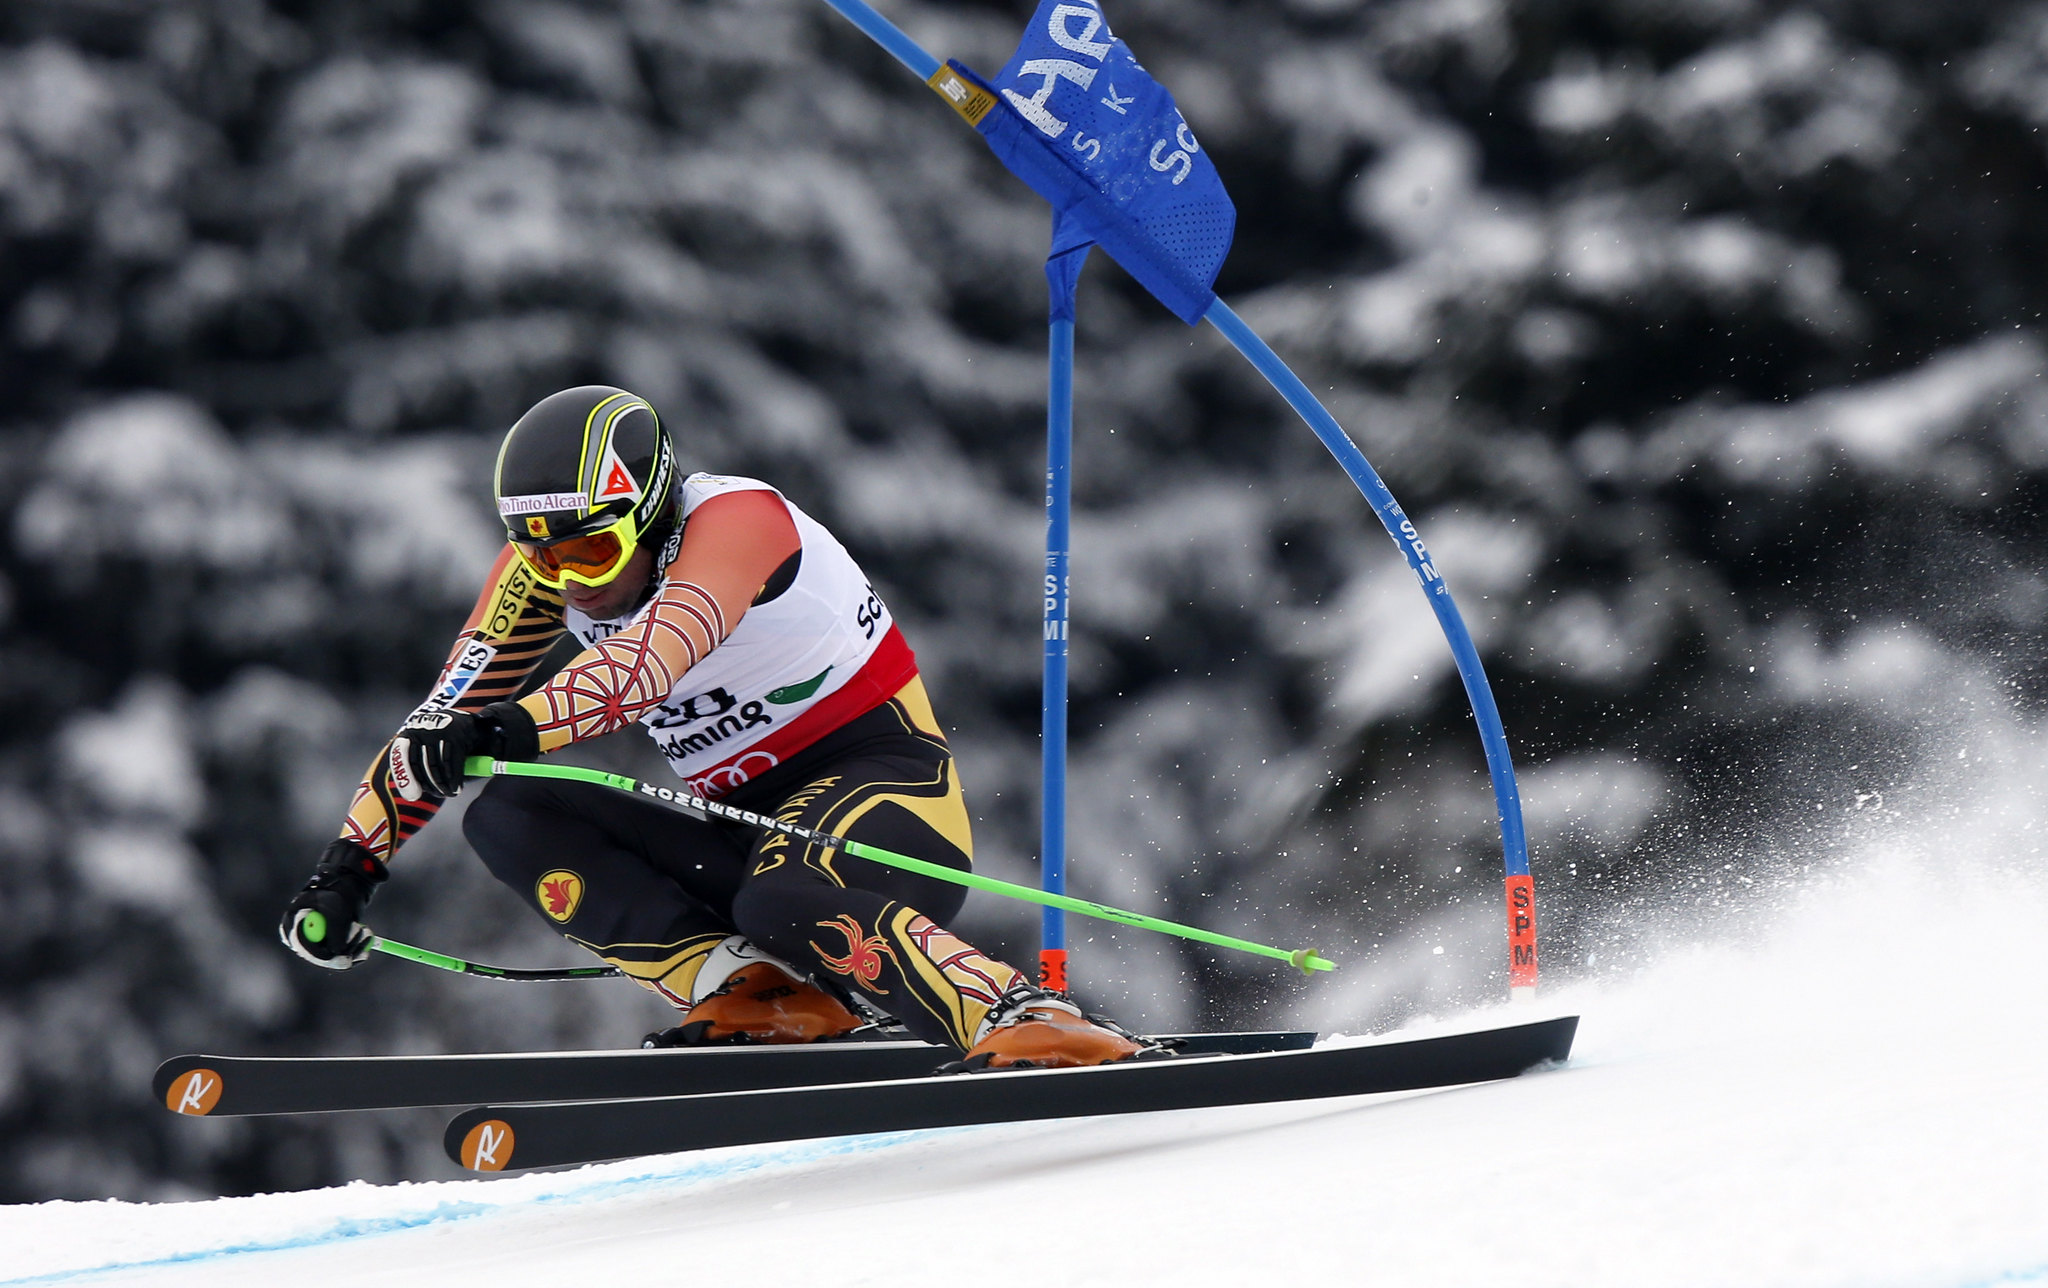 Manuel Osborne-Paradis looks ahead to the next gate in the men's super-G at world championships in Schladming, Austria.